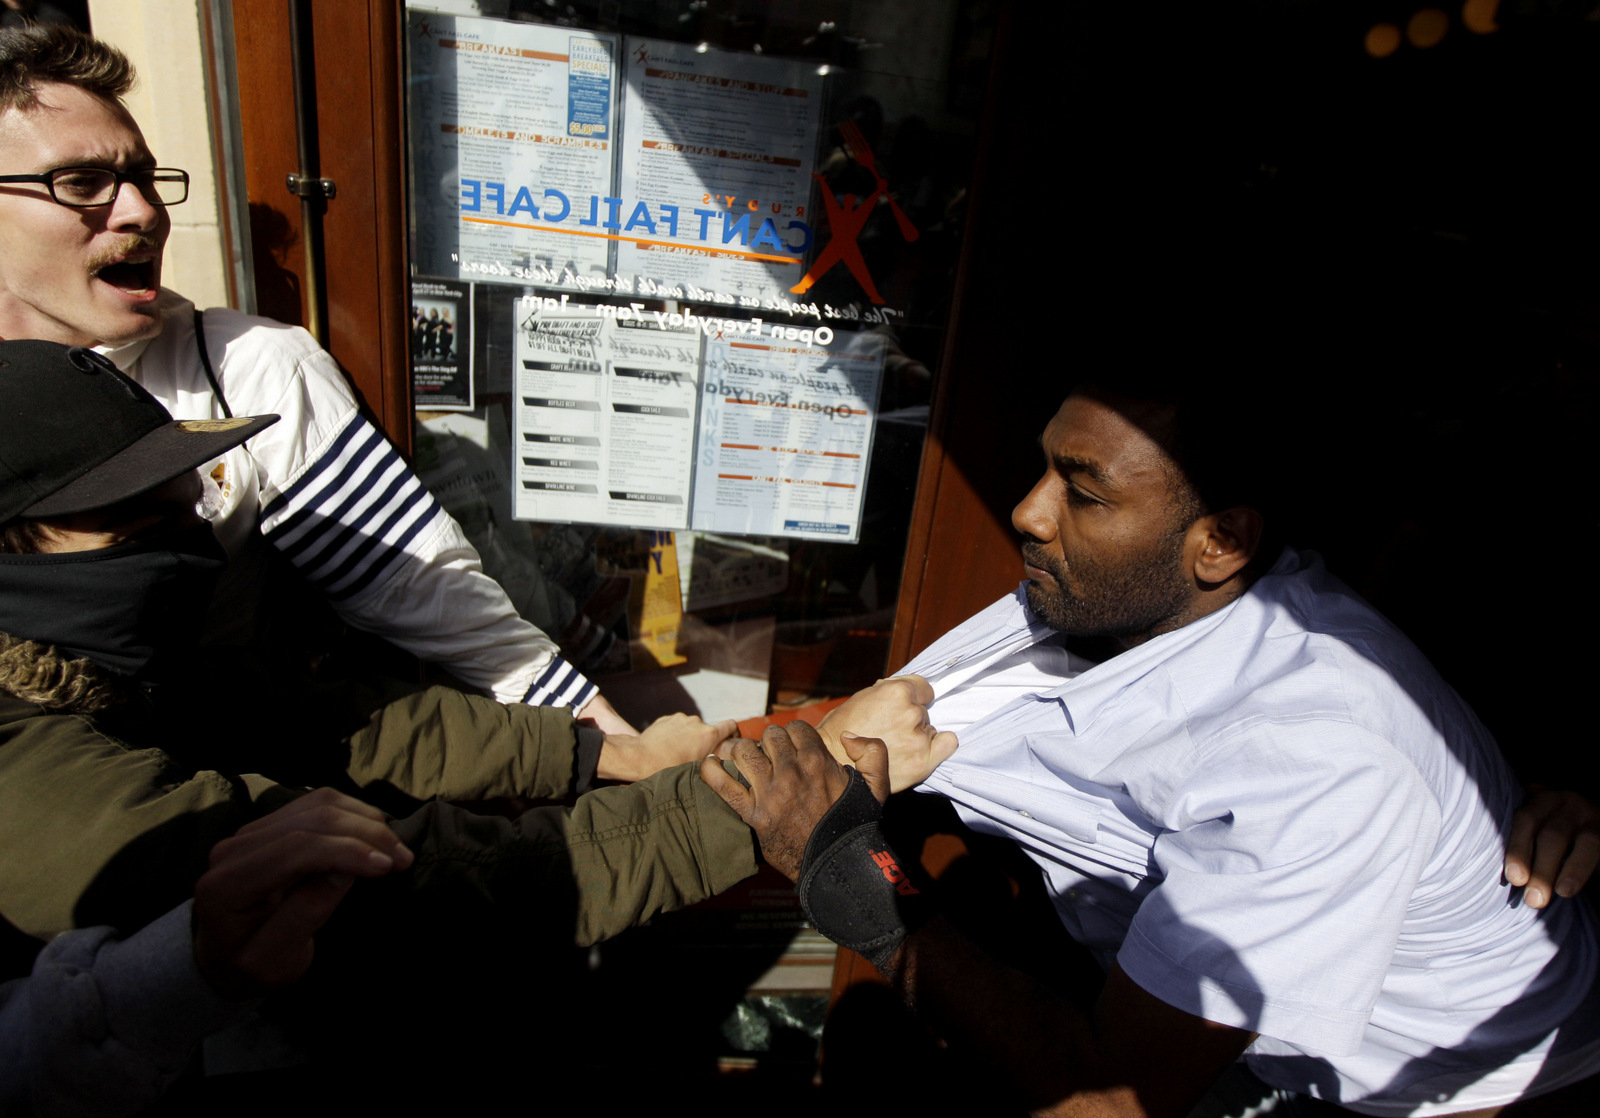 A storekeeper (right) clashes with Occupy Oakland protesters trying to shut down a coffee shop during May Day protests on, May 1, 2012 in Oakland, Calif. Marcio Jose Sanchez | AP